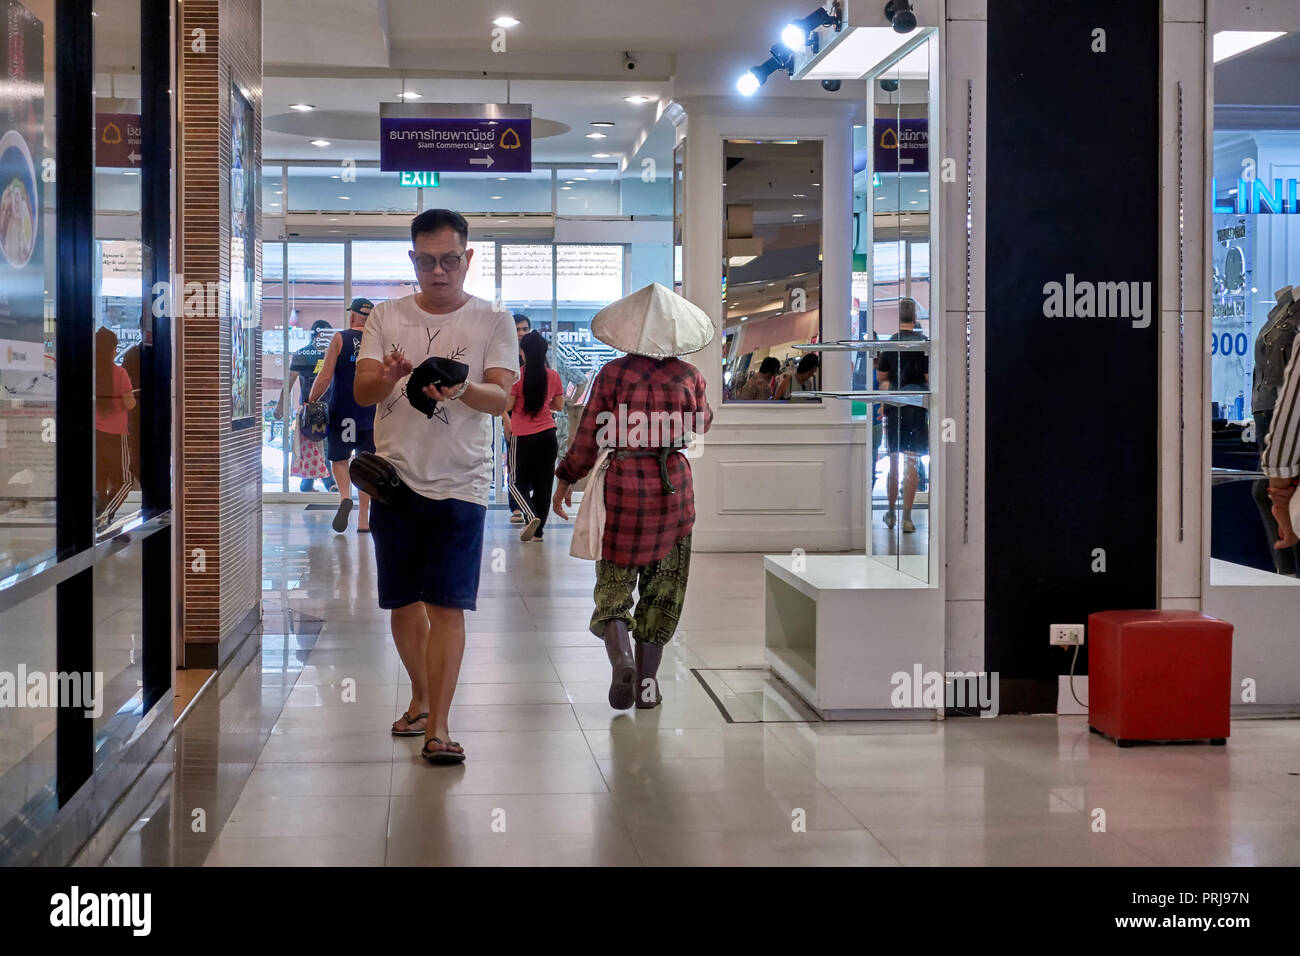 Thailand shopping mall interior with both city and rural shoppers providing an example of contrasting lifestyles.  Southeast Asia - Stock Image